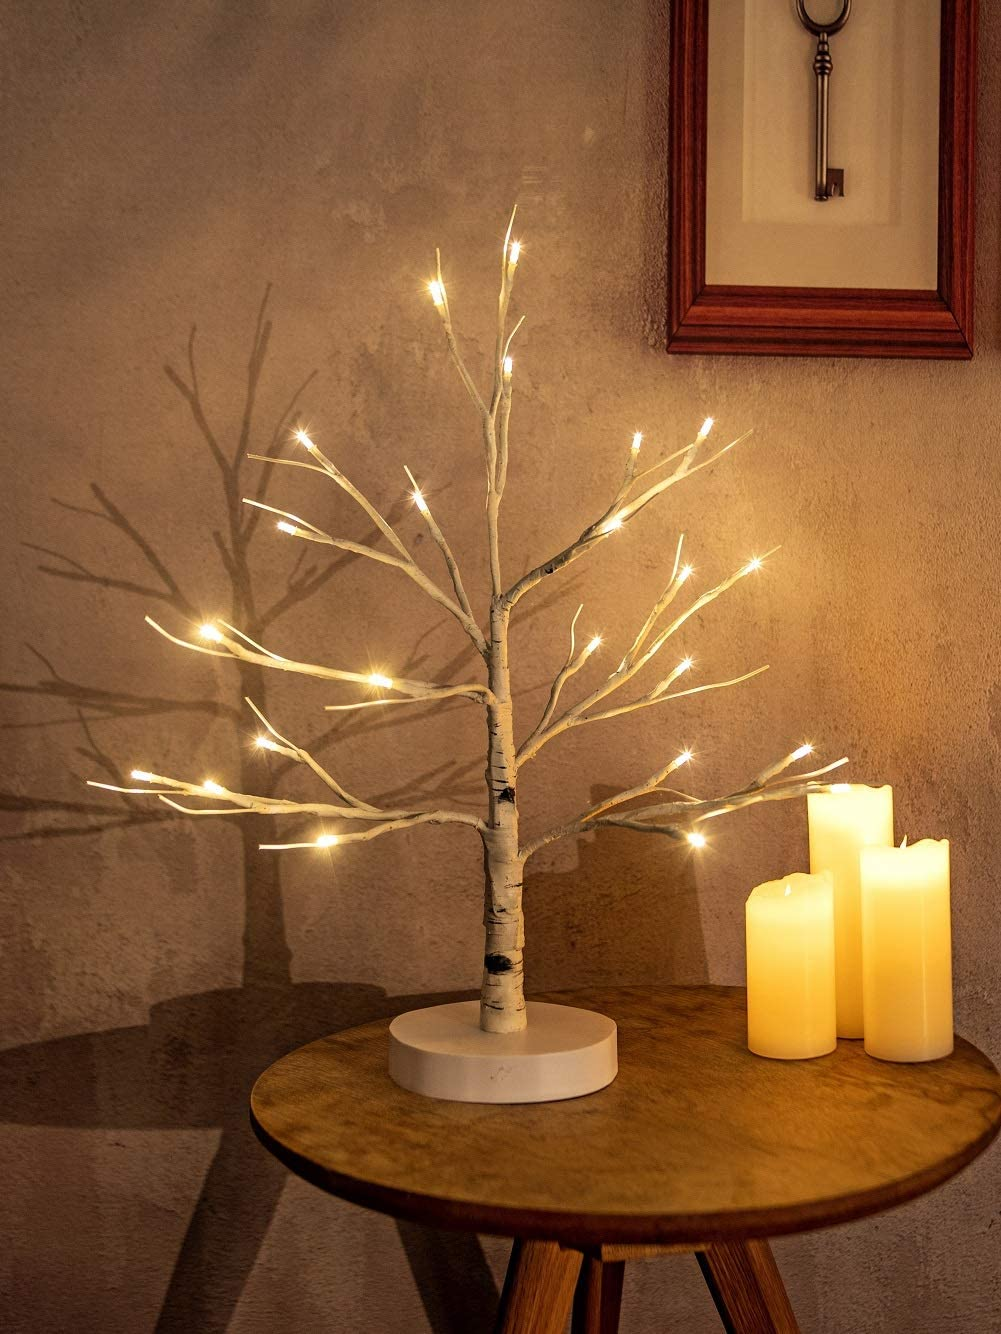 Artificial Decorative Light Tree | 24 Warm White LED Star Batteries USB Operated | Tabletop Decoration Centerpiece | Christmas Easter Holiday Party Indoor Decor 18 Inches (80 LEDs White Base)